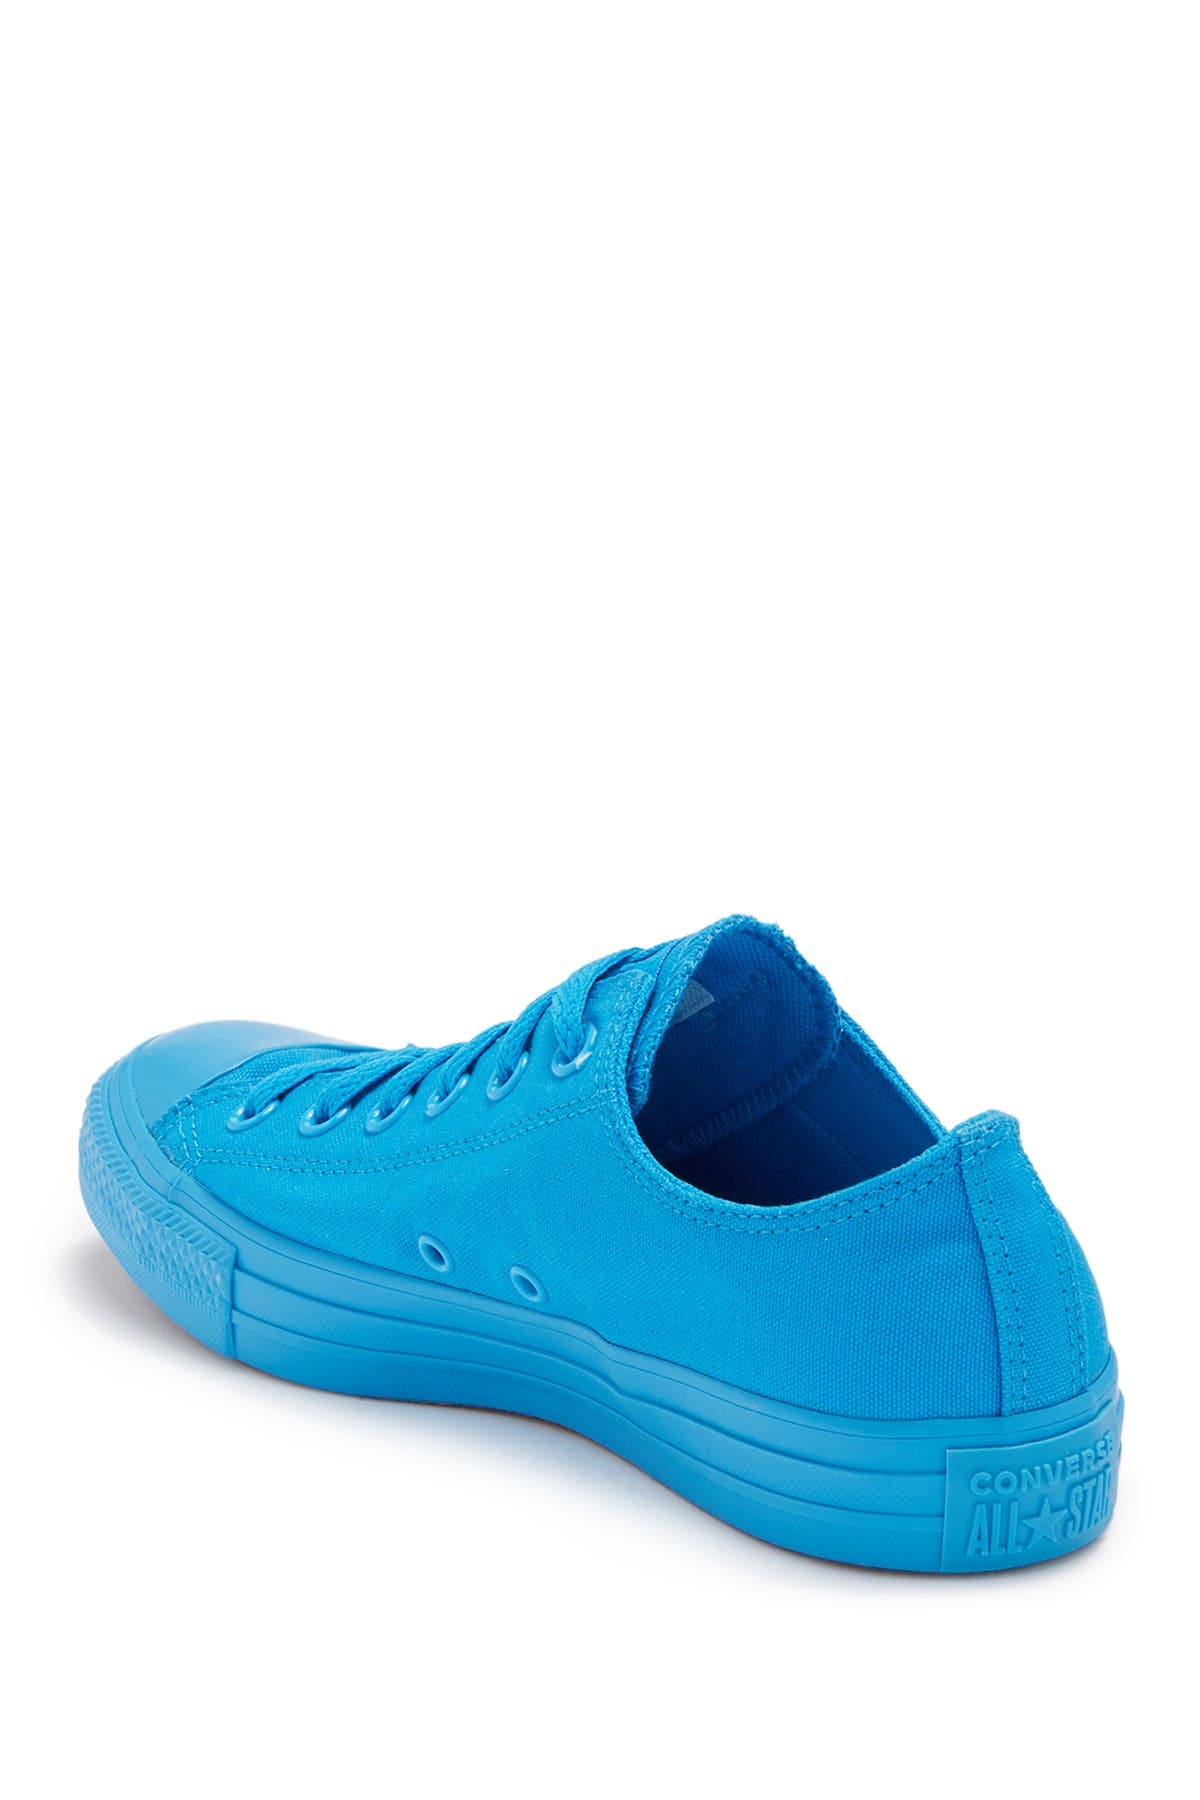 Converse Chuck Taylor All Star Oxford Sneaker In Spray Paint Blu ...